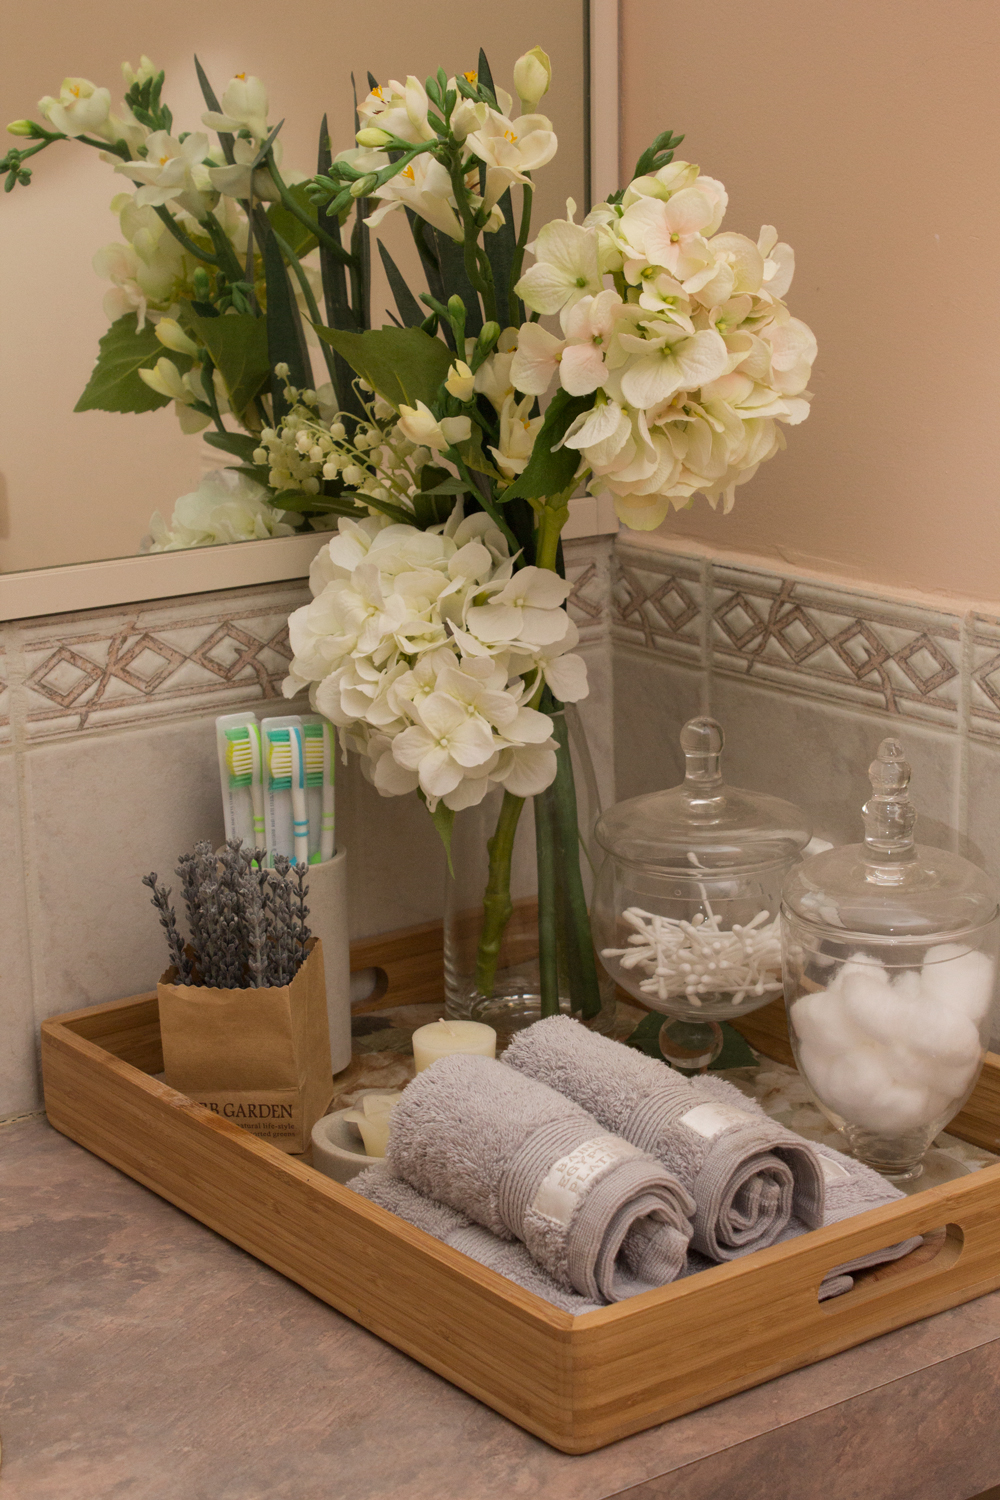 Bathroom Countertop Storage Solutions With Aesthetic Charm on Countertop Decor  id=80822